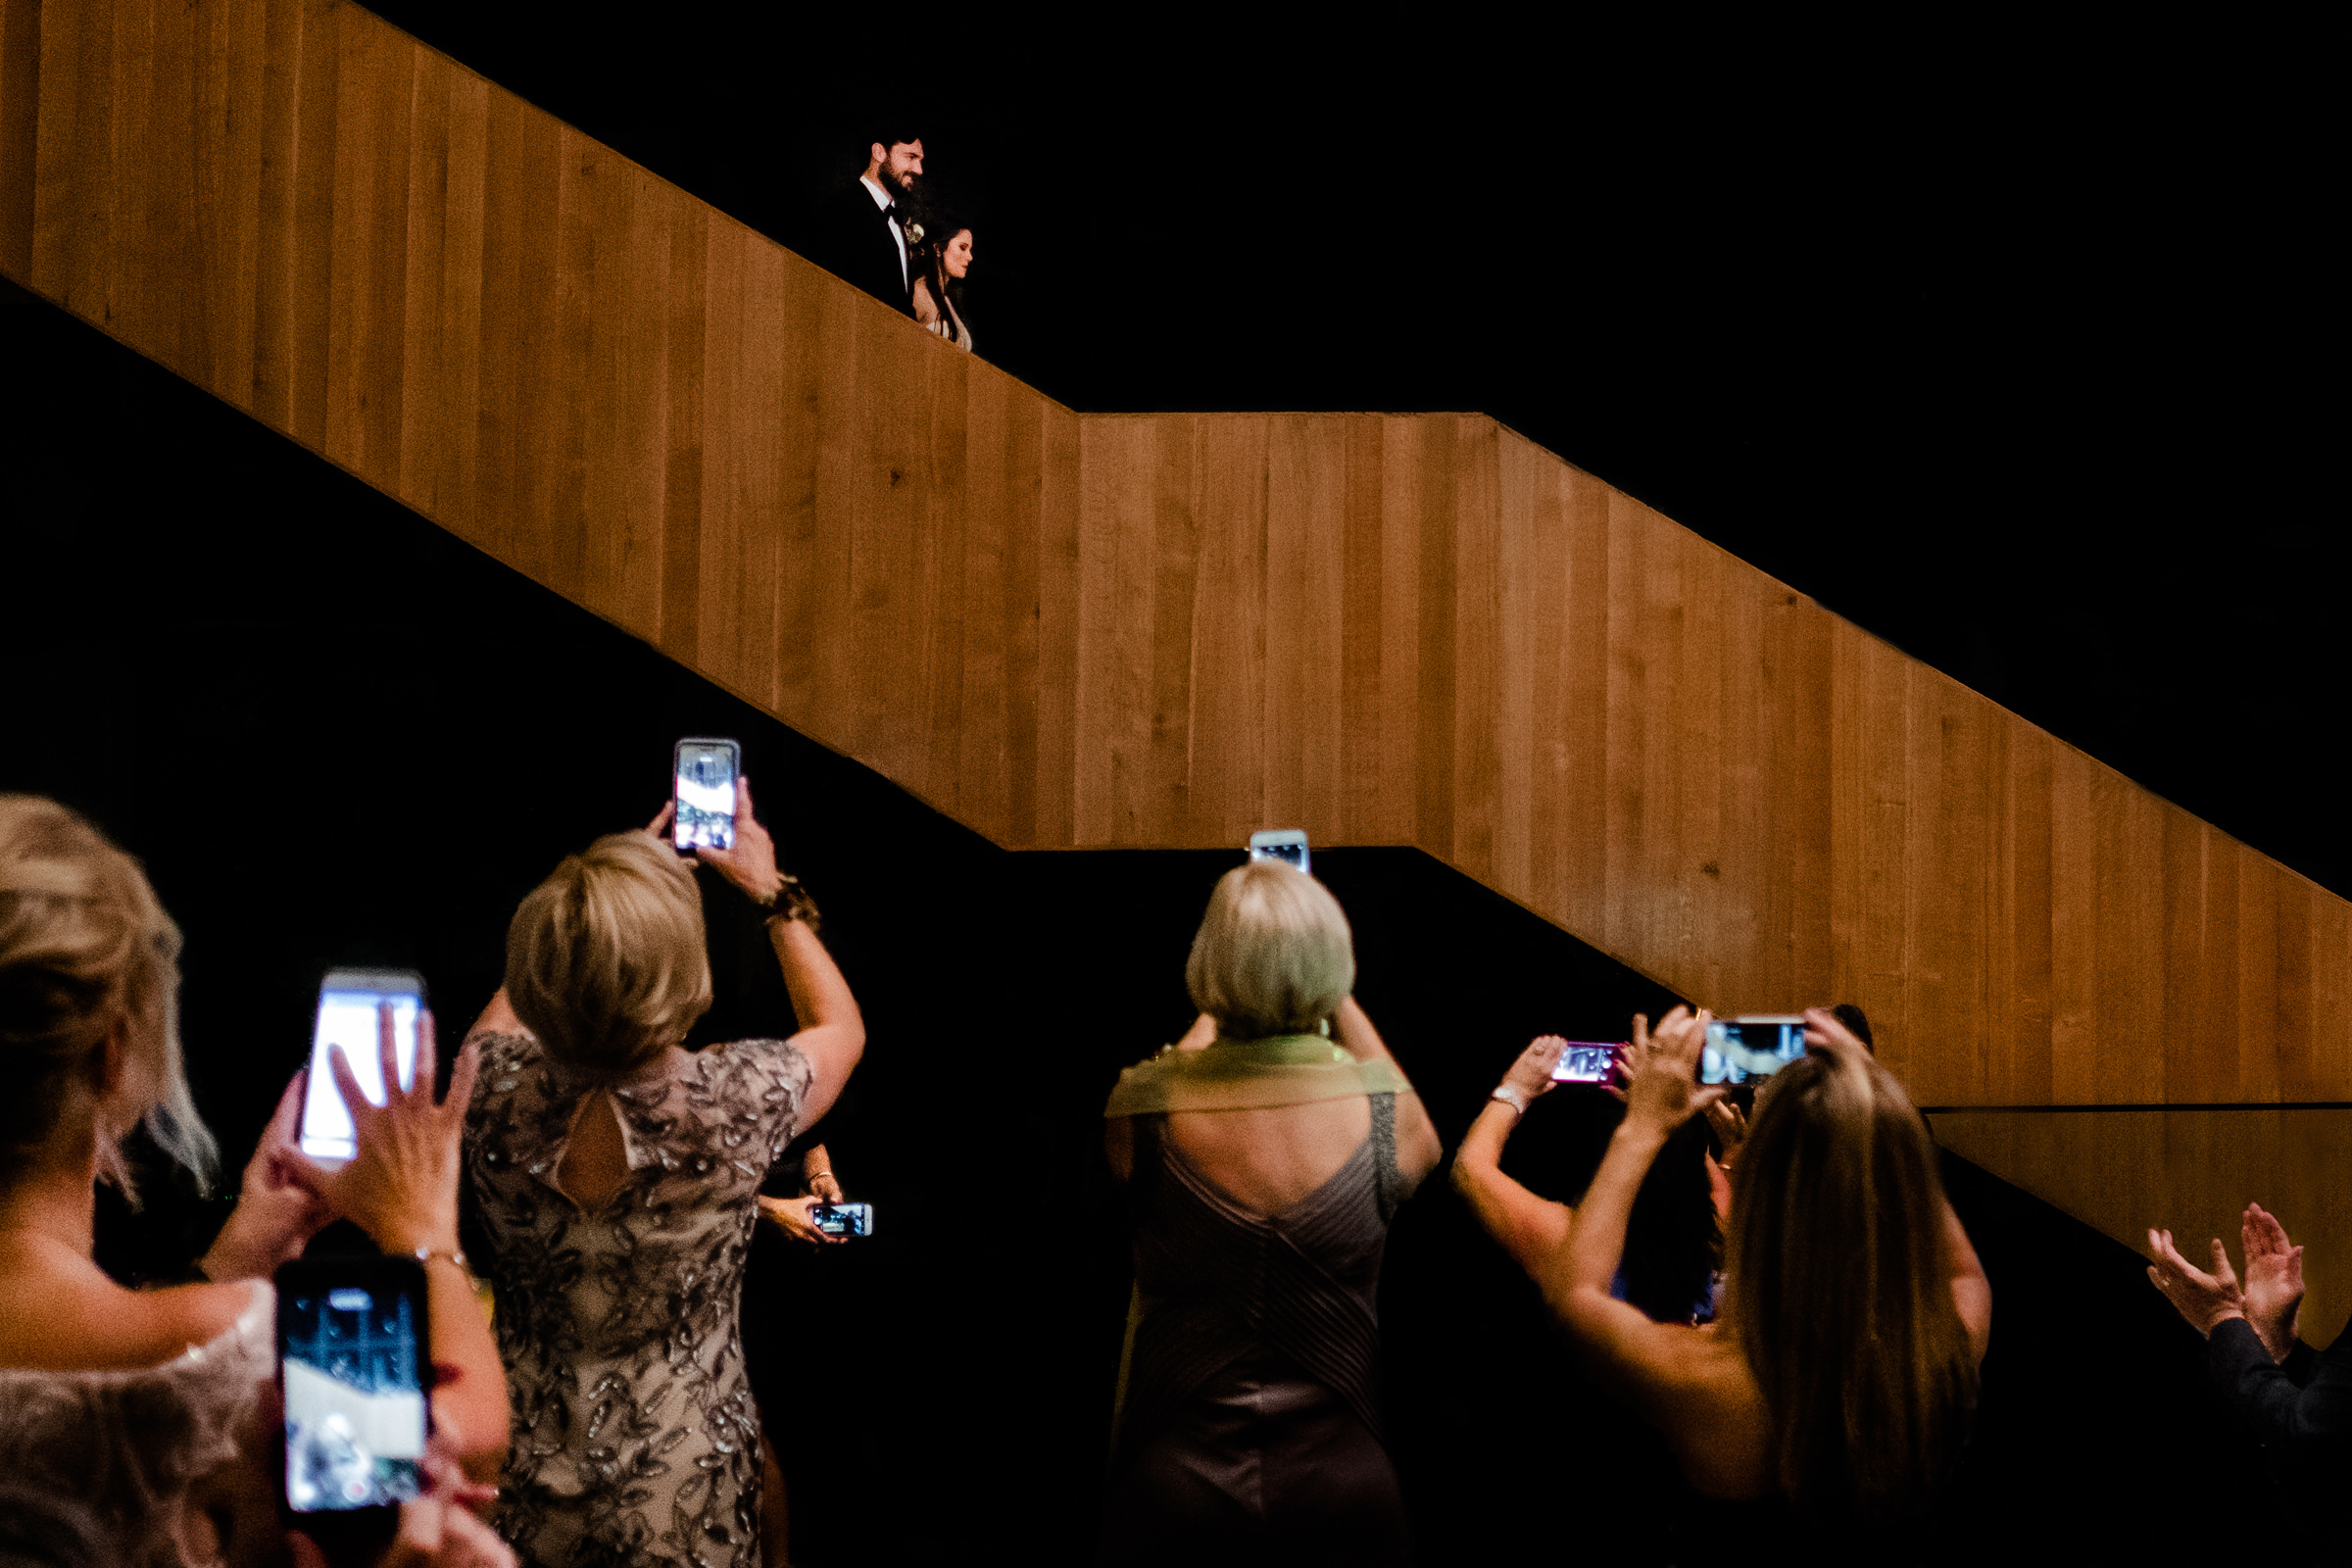 guests-shooting-phone-photos-of-couple-descending-stairs-vinson-images